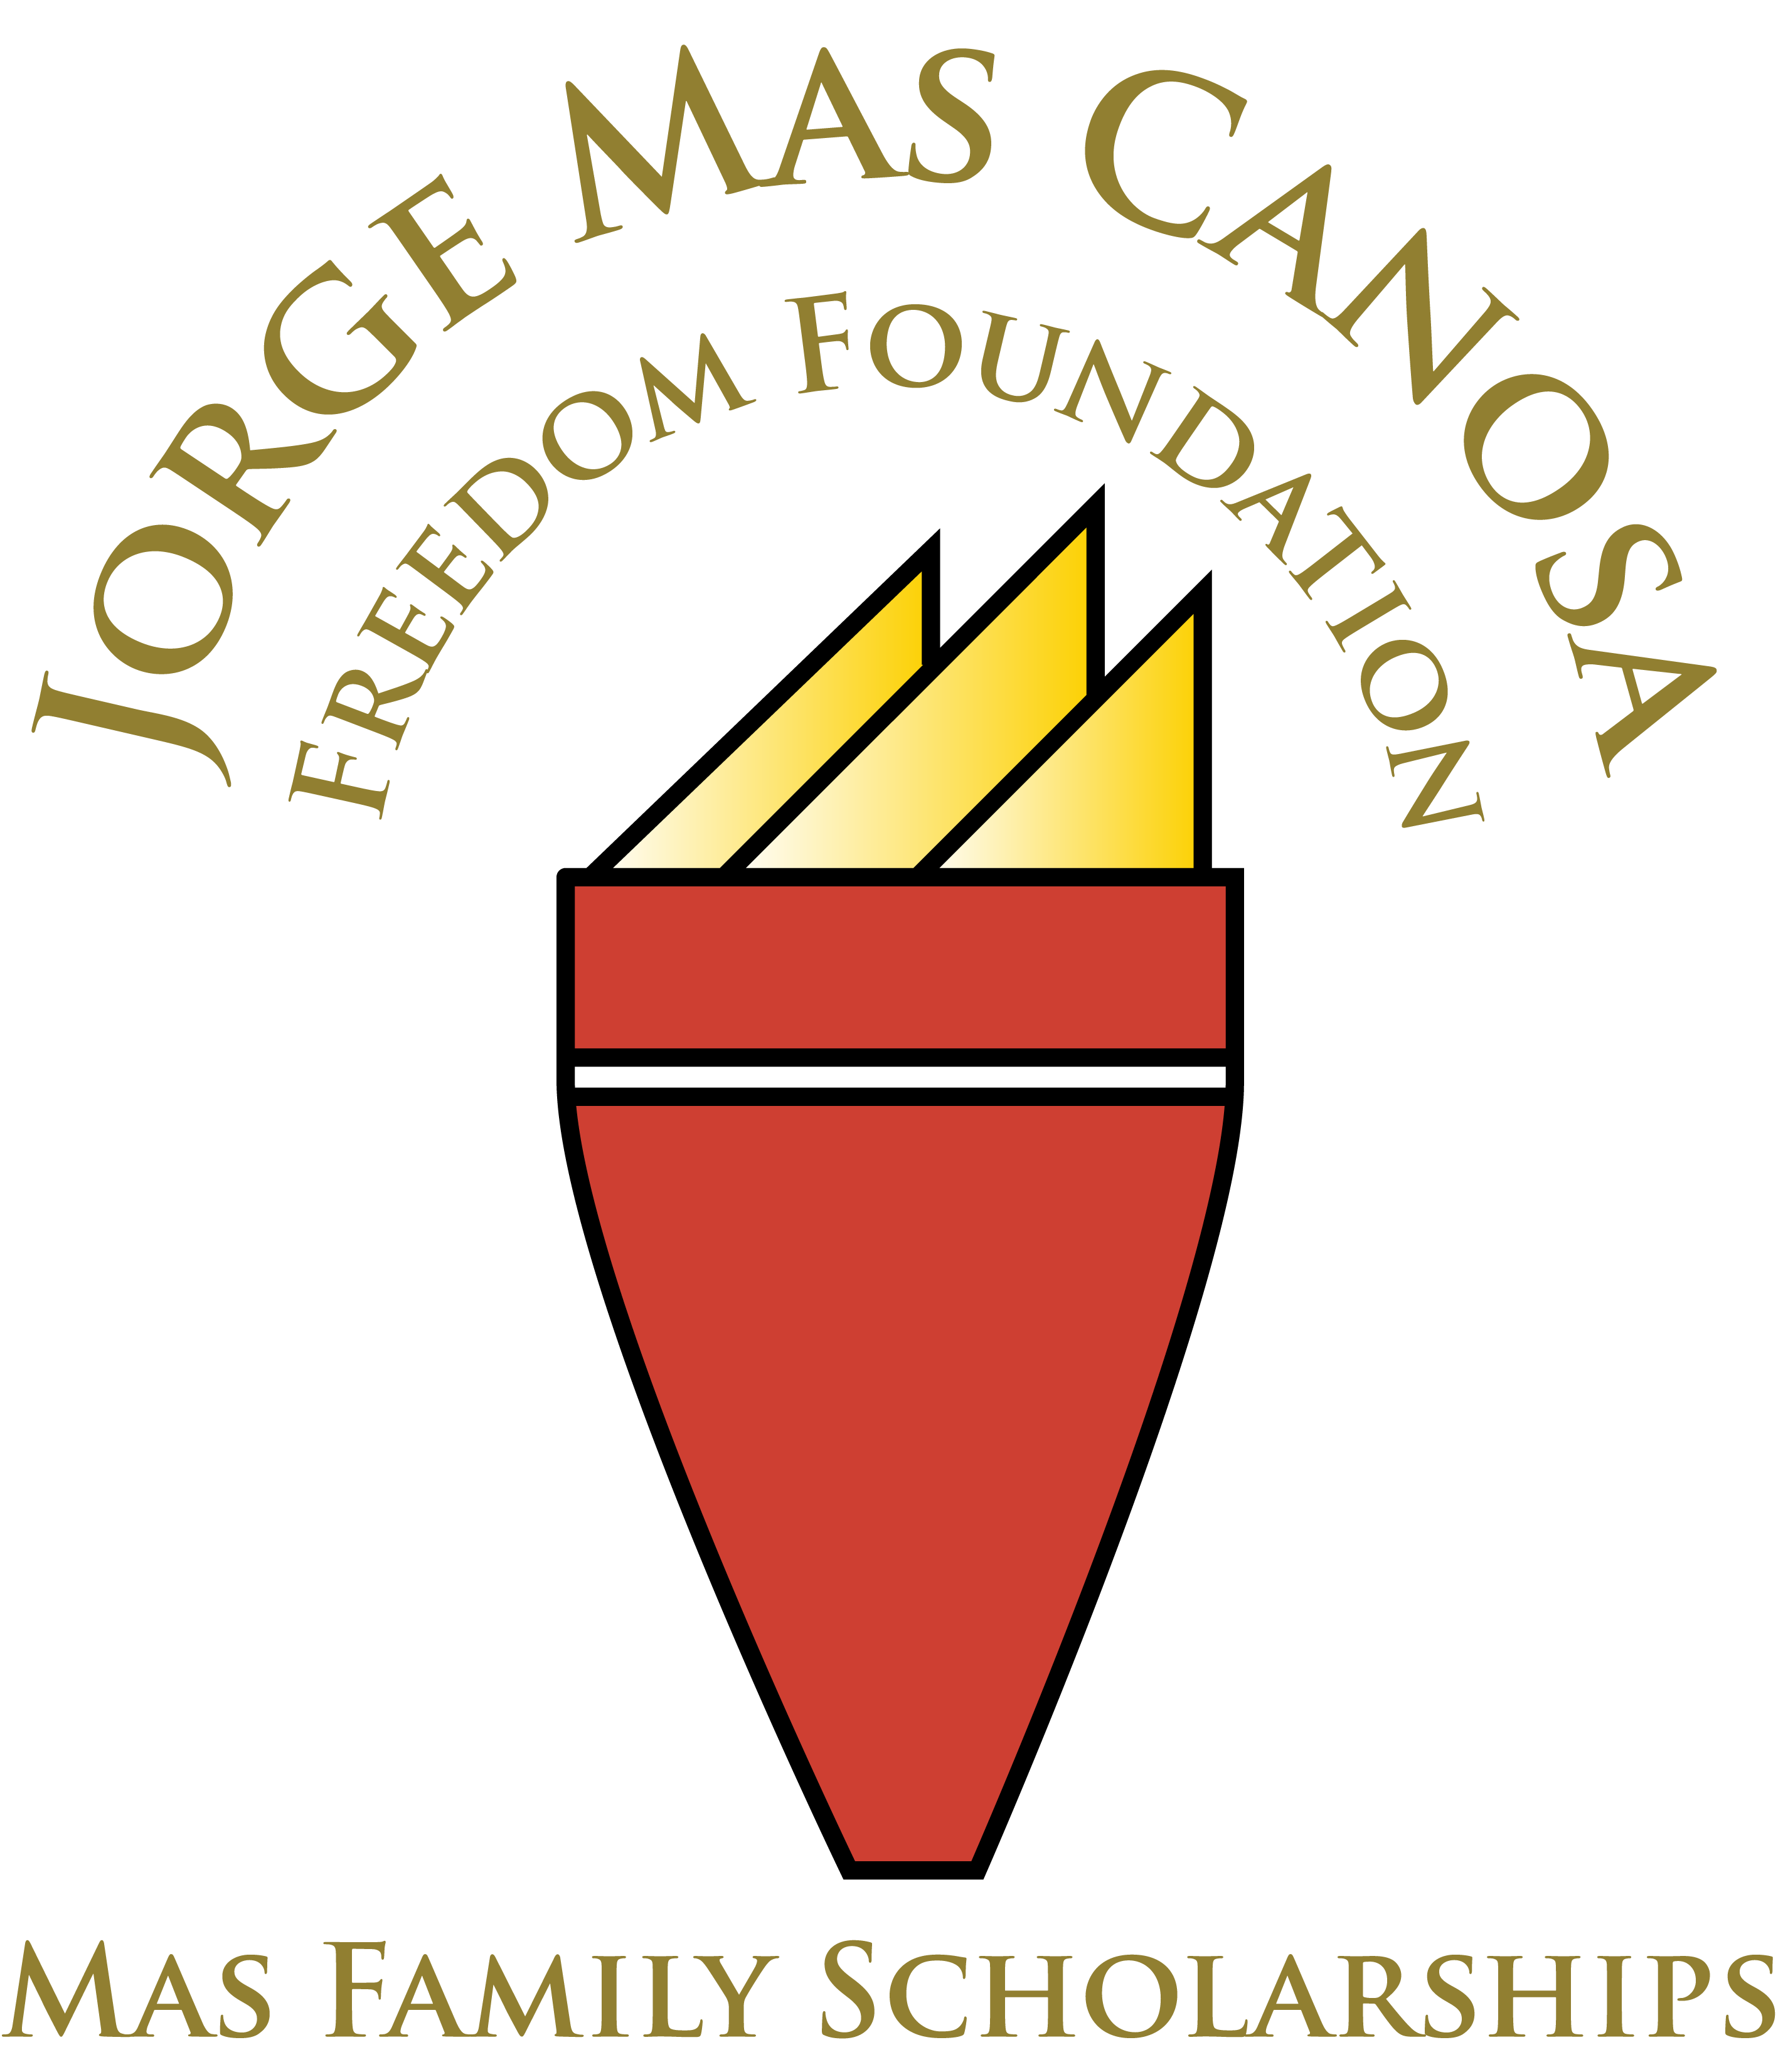 Jorge Mas Canosa Freedom Foundation